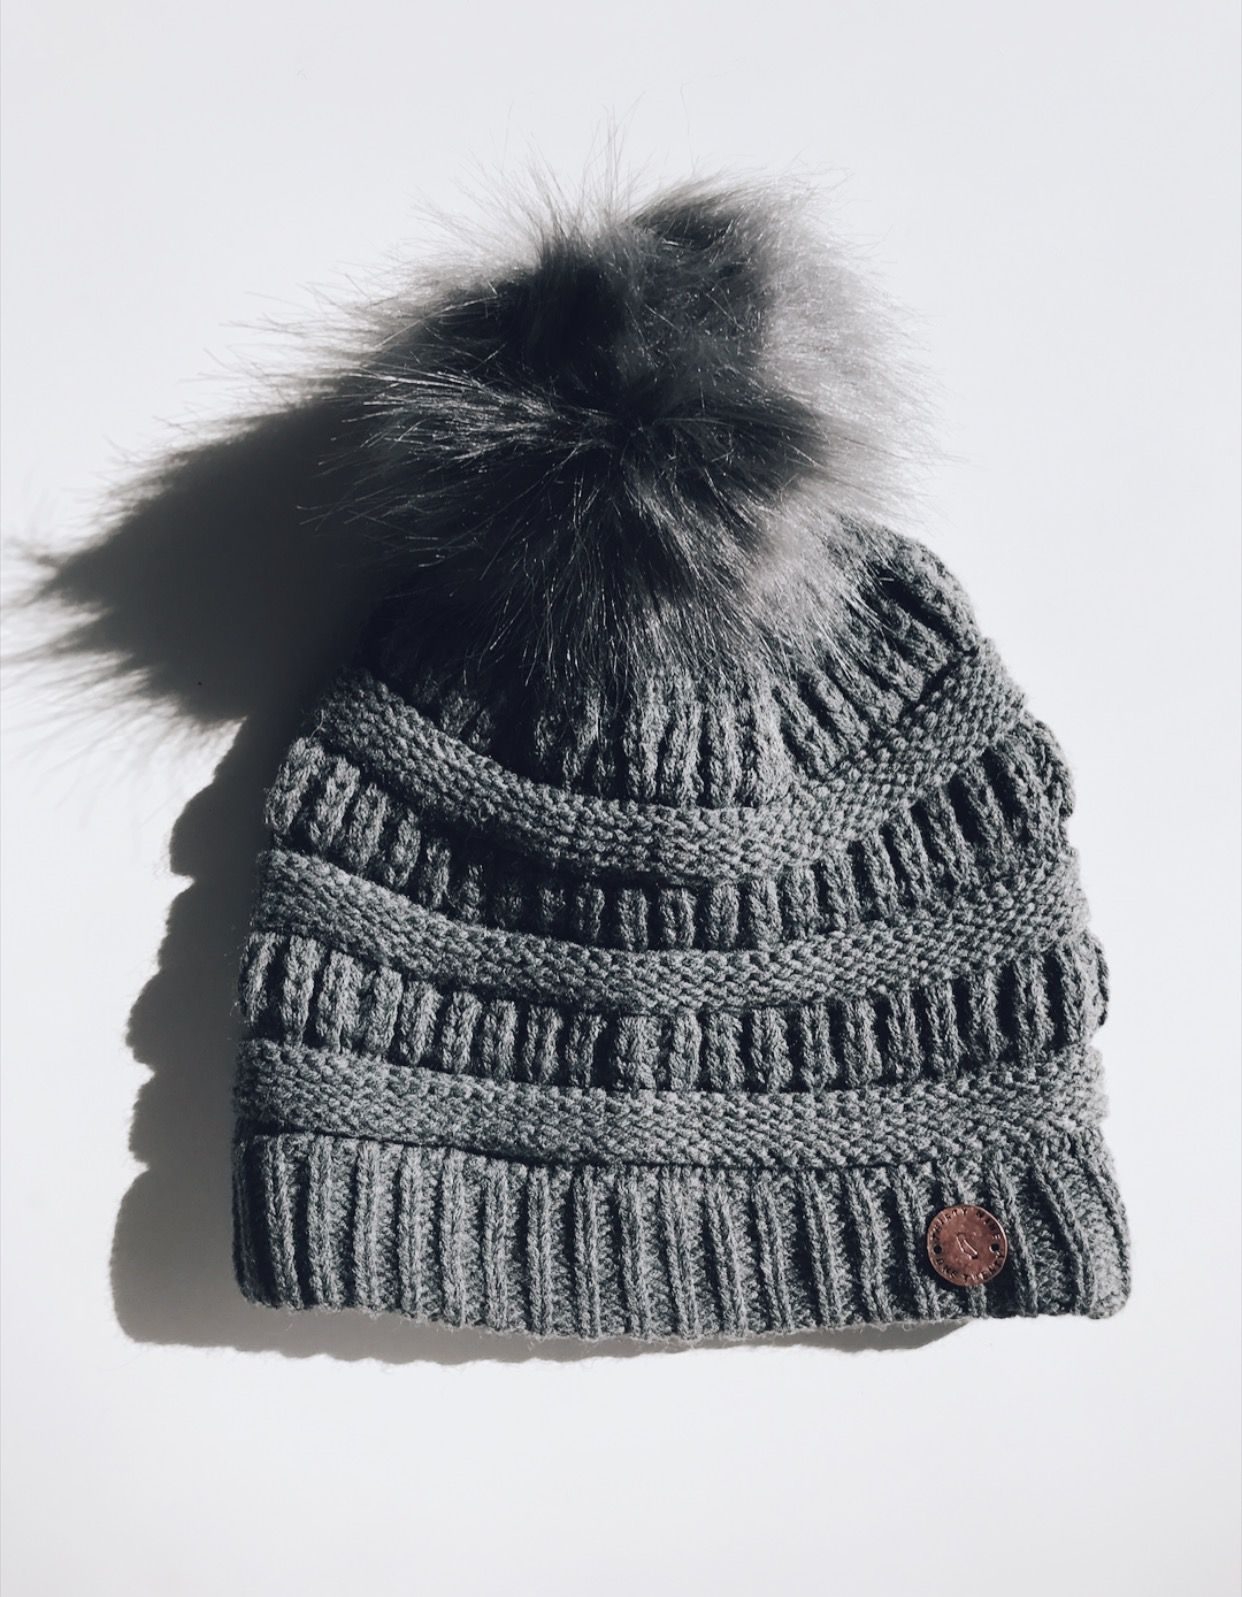 09791facde5 The perfect grey cable knit pom beanie for all your outdoor adventures.  This cozy and